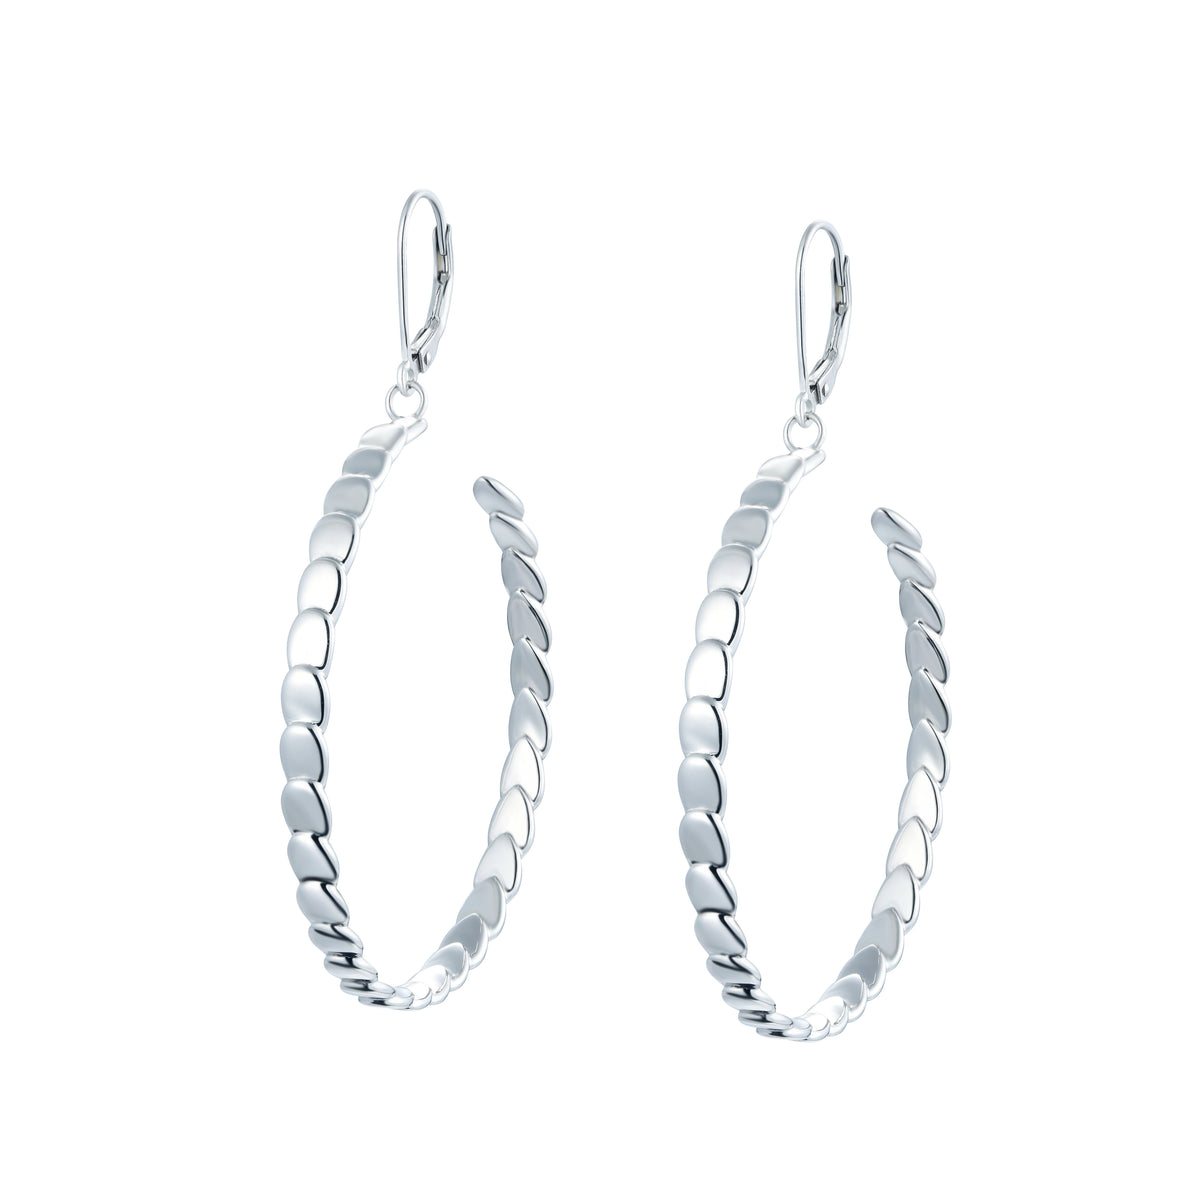 Salacia | Skopelos Earrings | 925 Silver | White Rhodium Plated